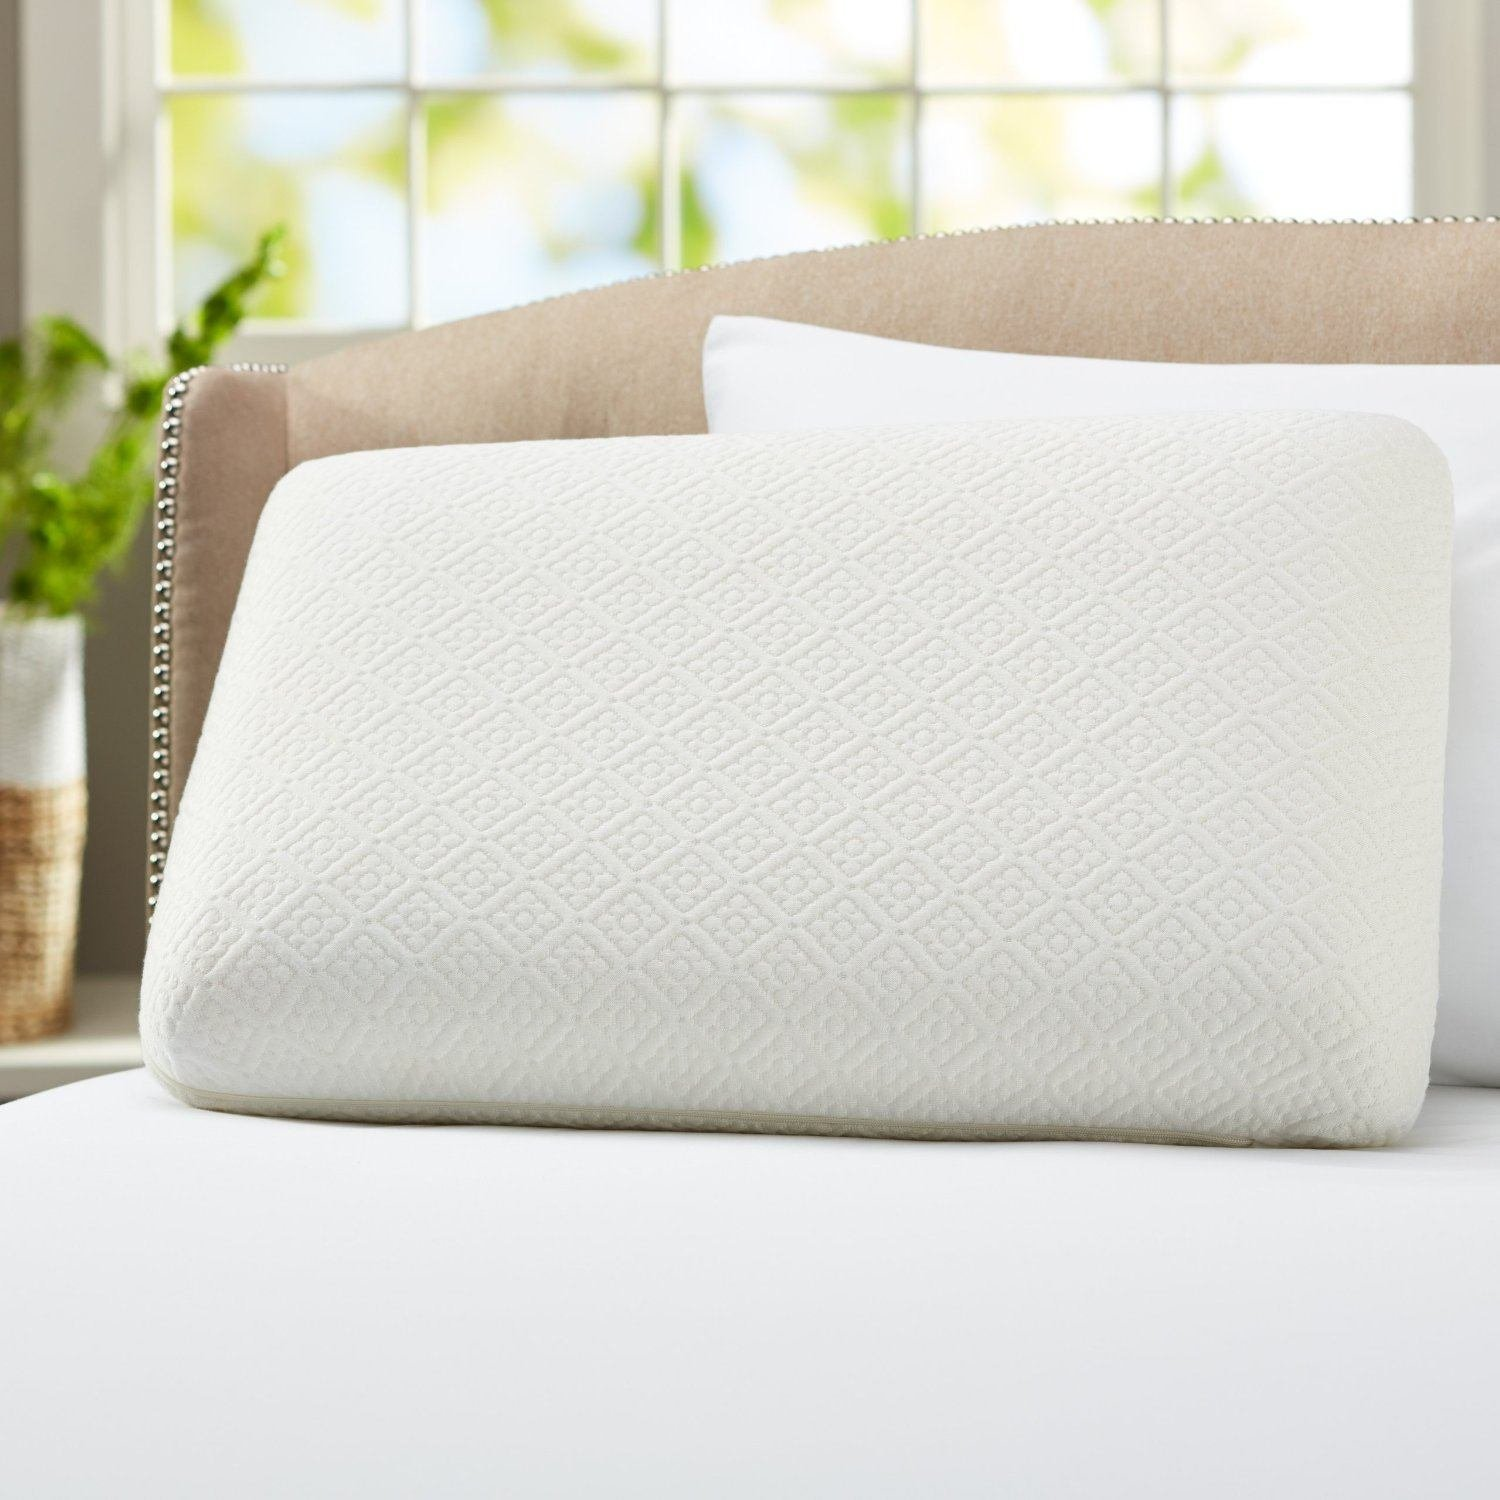 aquasealpro pillowcase pillow cool ideas of way quick awesome keep easy a sew and modern com to